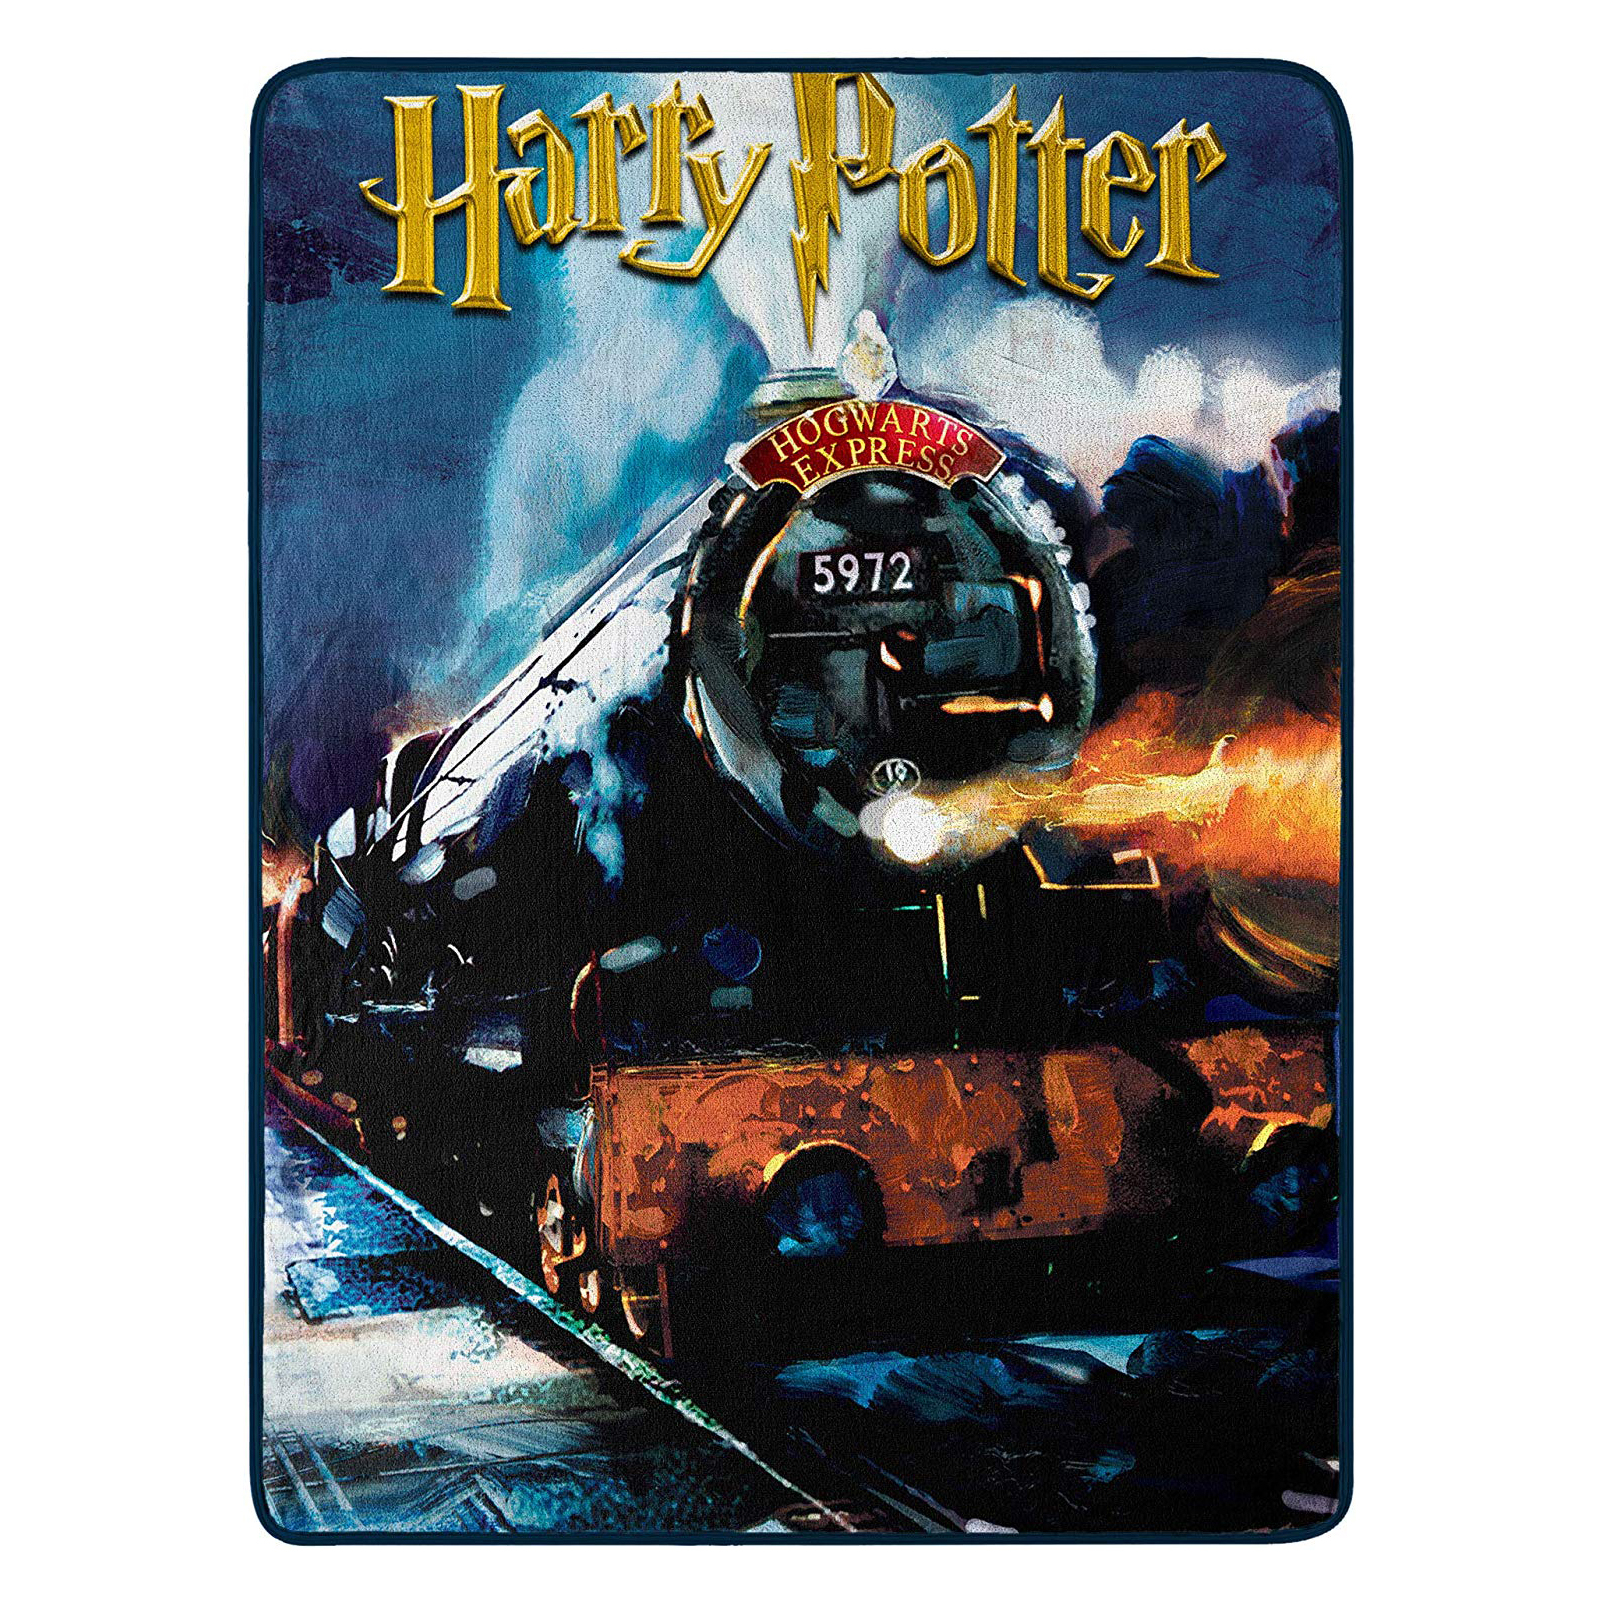 Harry Potter Hogwarts Express Soft Throw Blanket 46 x 60 In